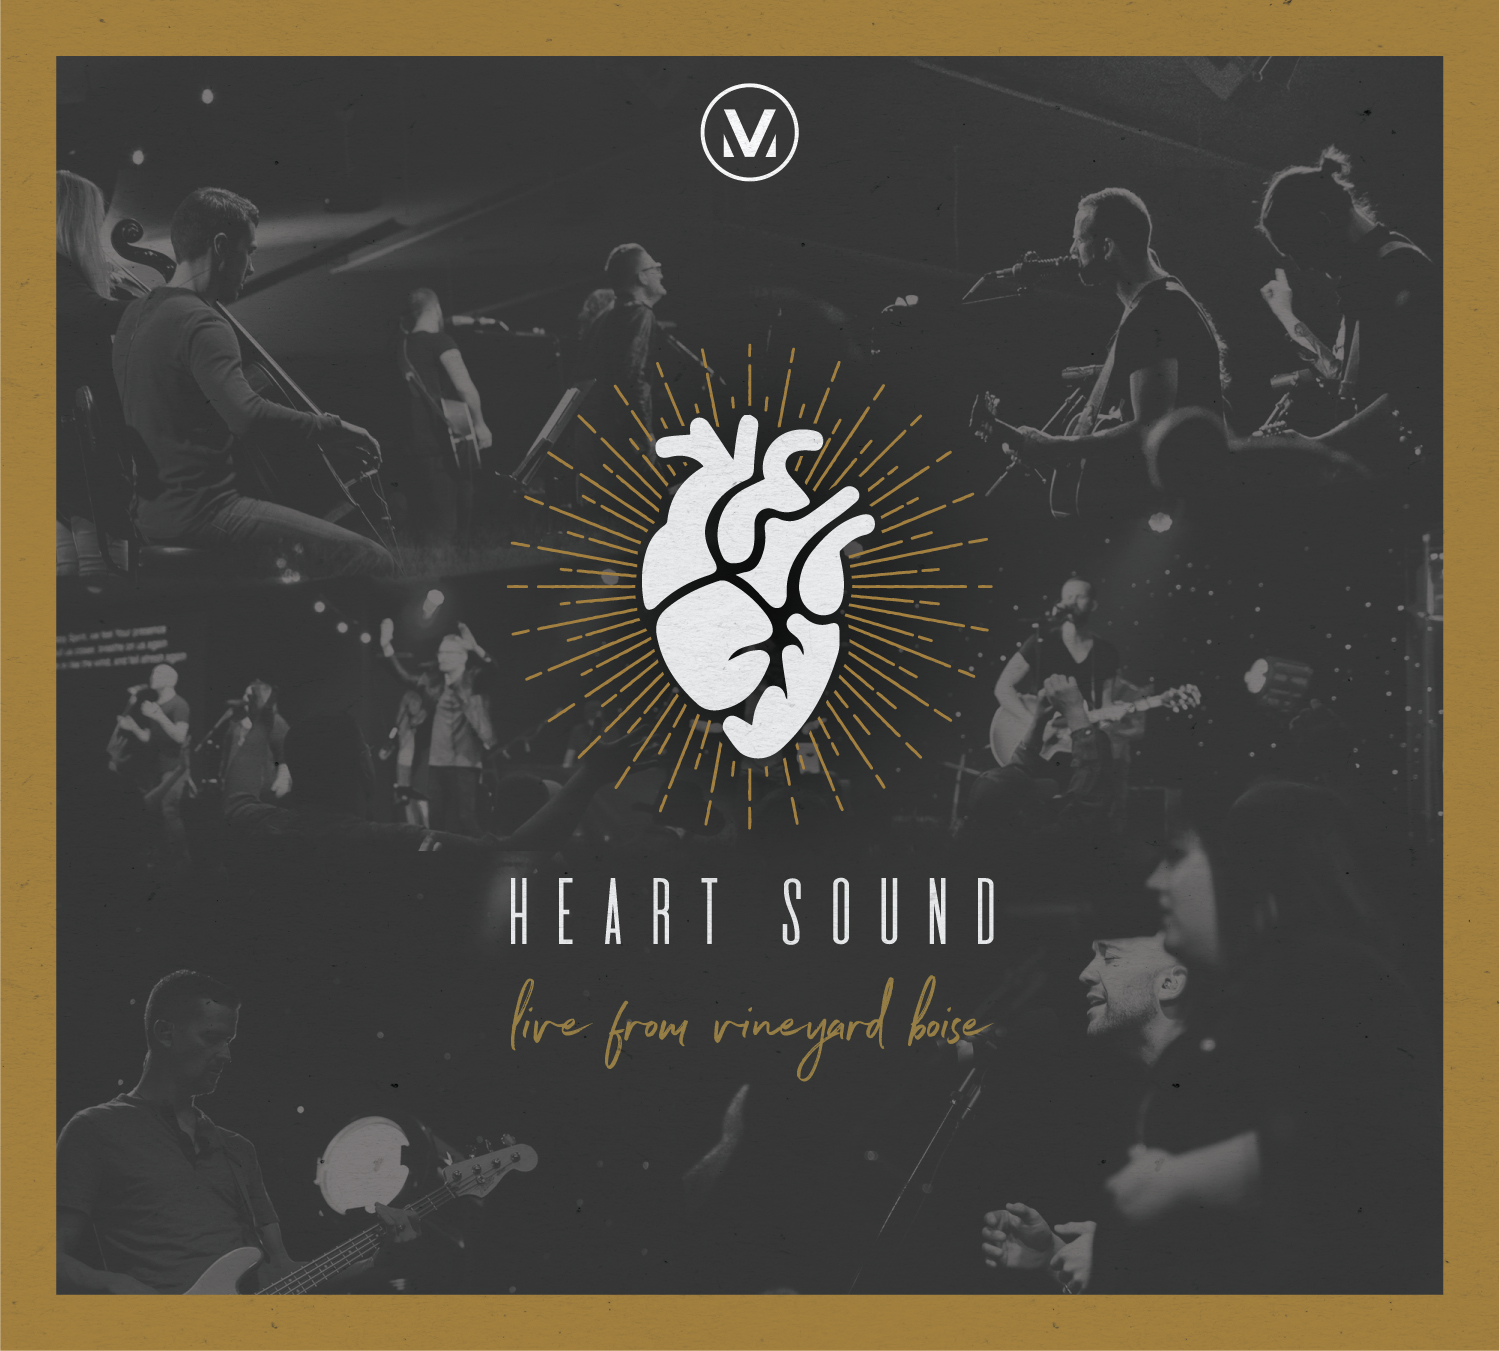 """Vineyard Worship -""""Heart Sound: Live from Vineyard Boise"""" - 2018 - producer, studio engineer, KEYS, SYNTH, ELECTRIC GUITAR, ACOUSTIC GUITAR(GOD WITH ME), SONGWRITER (READY, SONG OF HEAVEN, GOD WITH ME, SAFE)"""